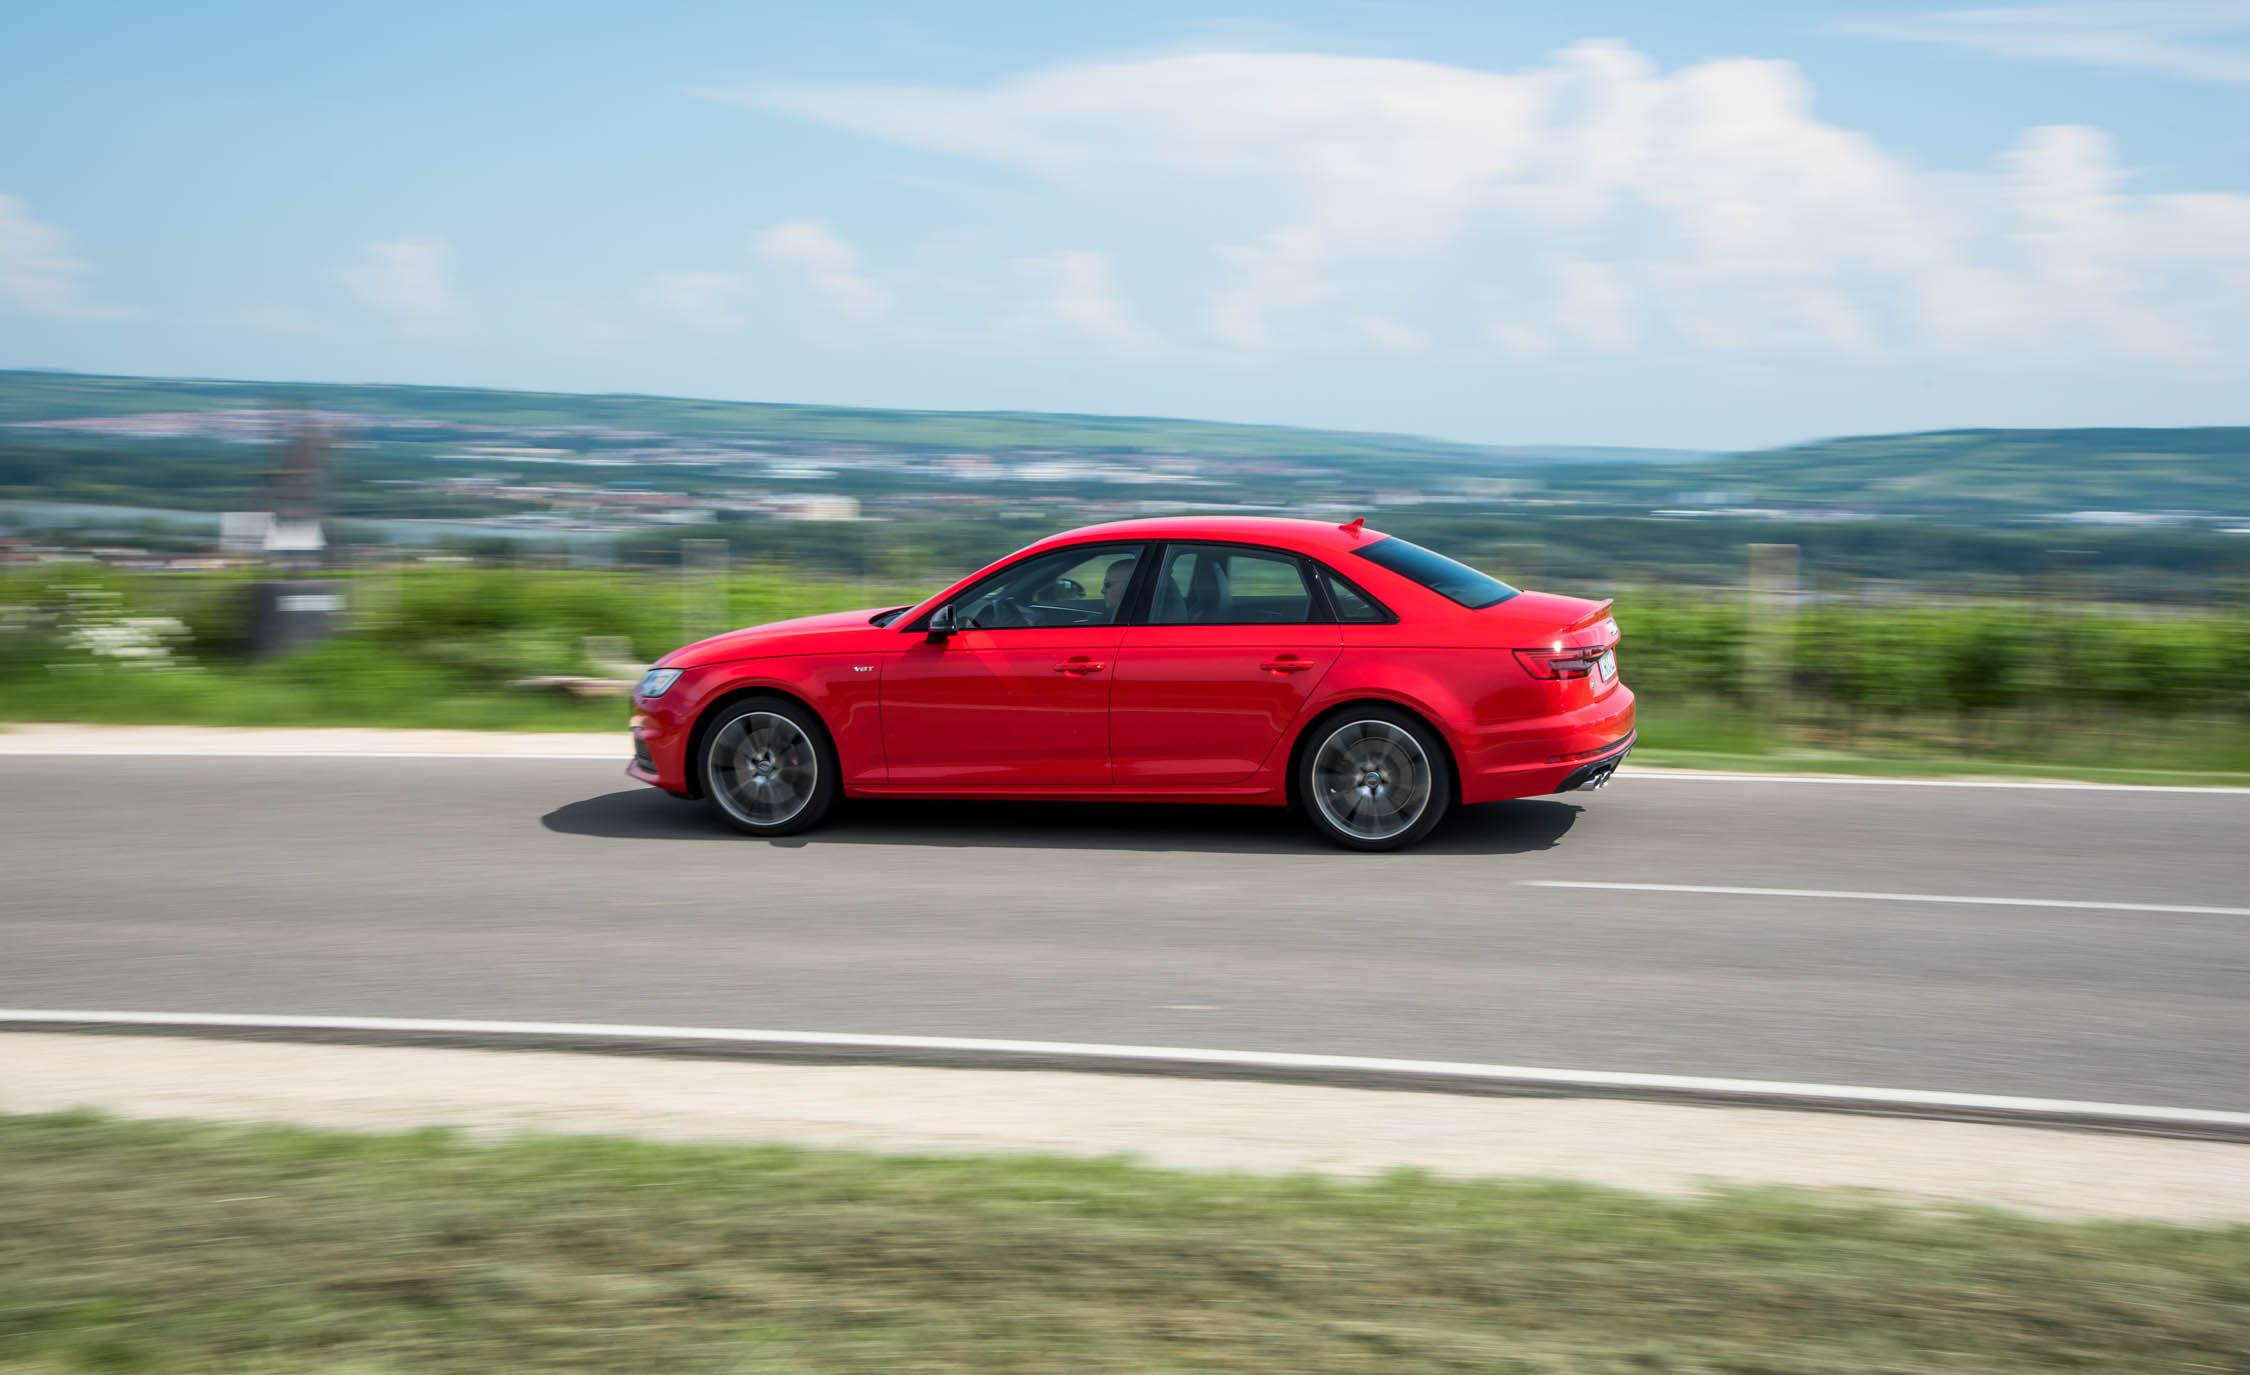 2018 Audi S4 Test Drive Red Metallic (Photo 13 of 17)